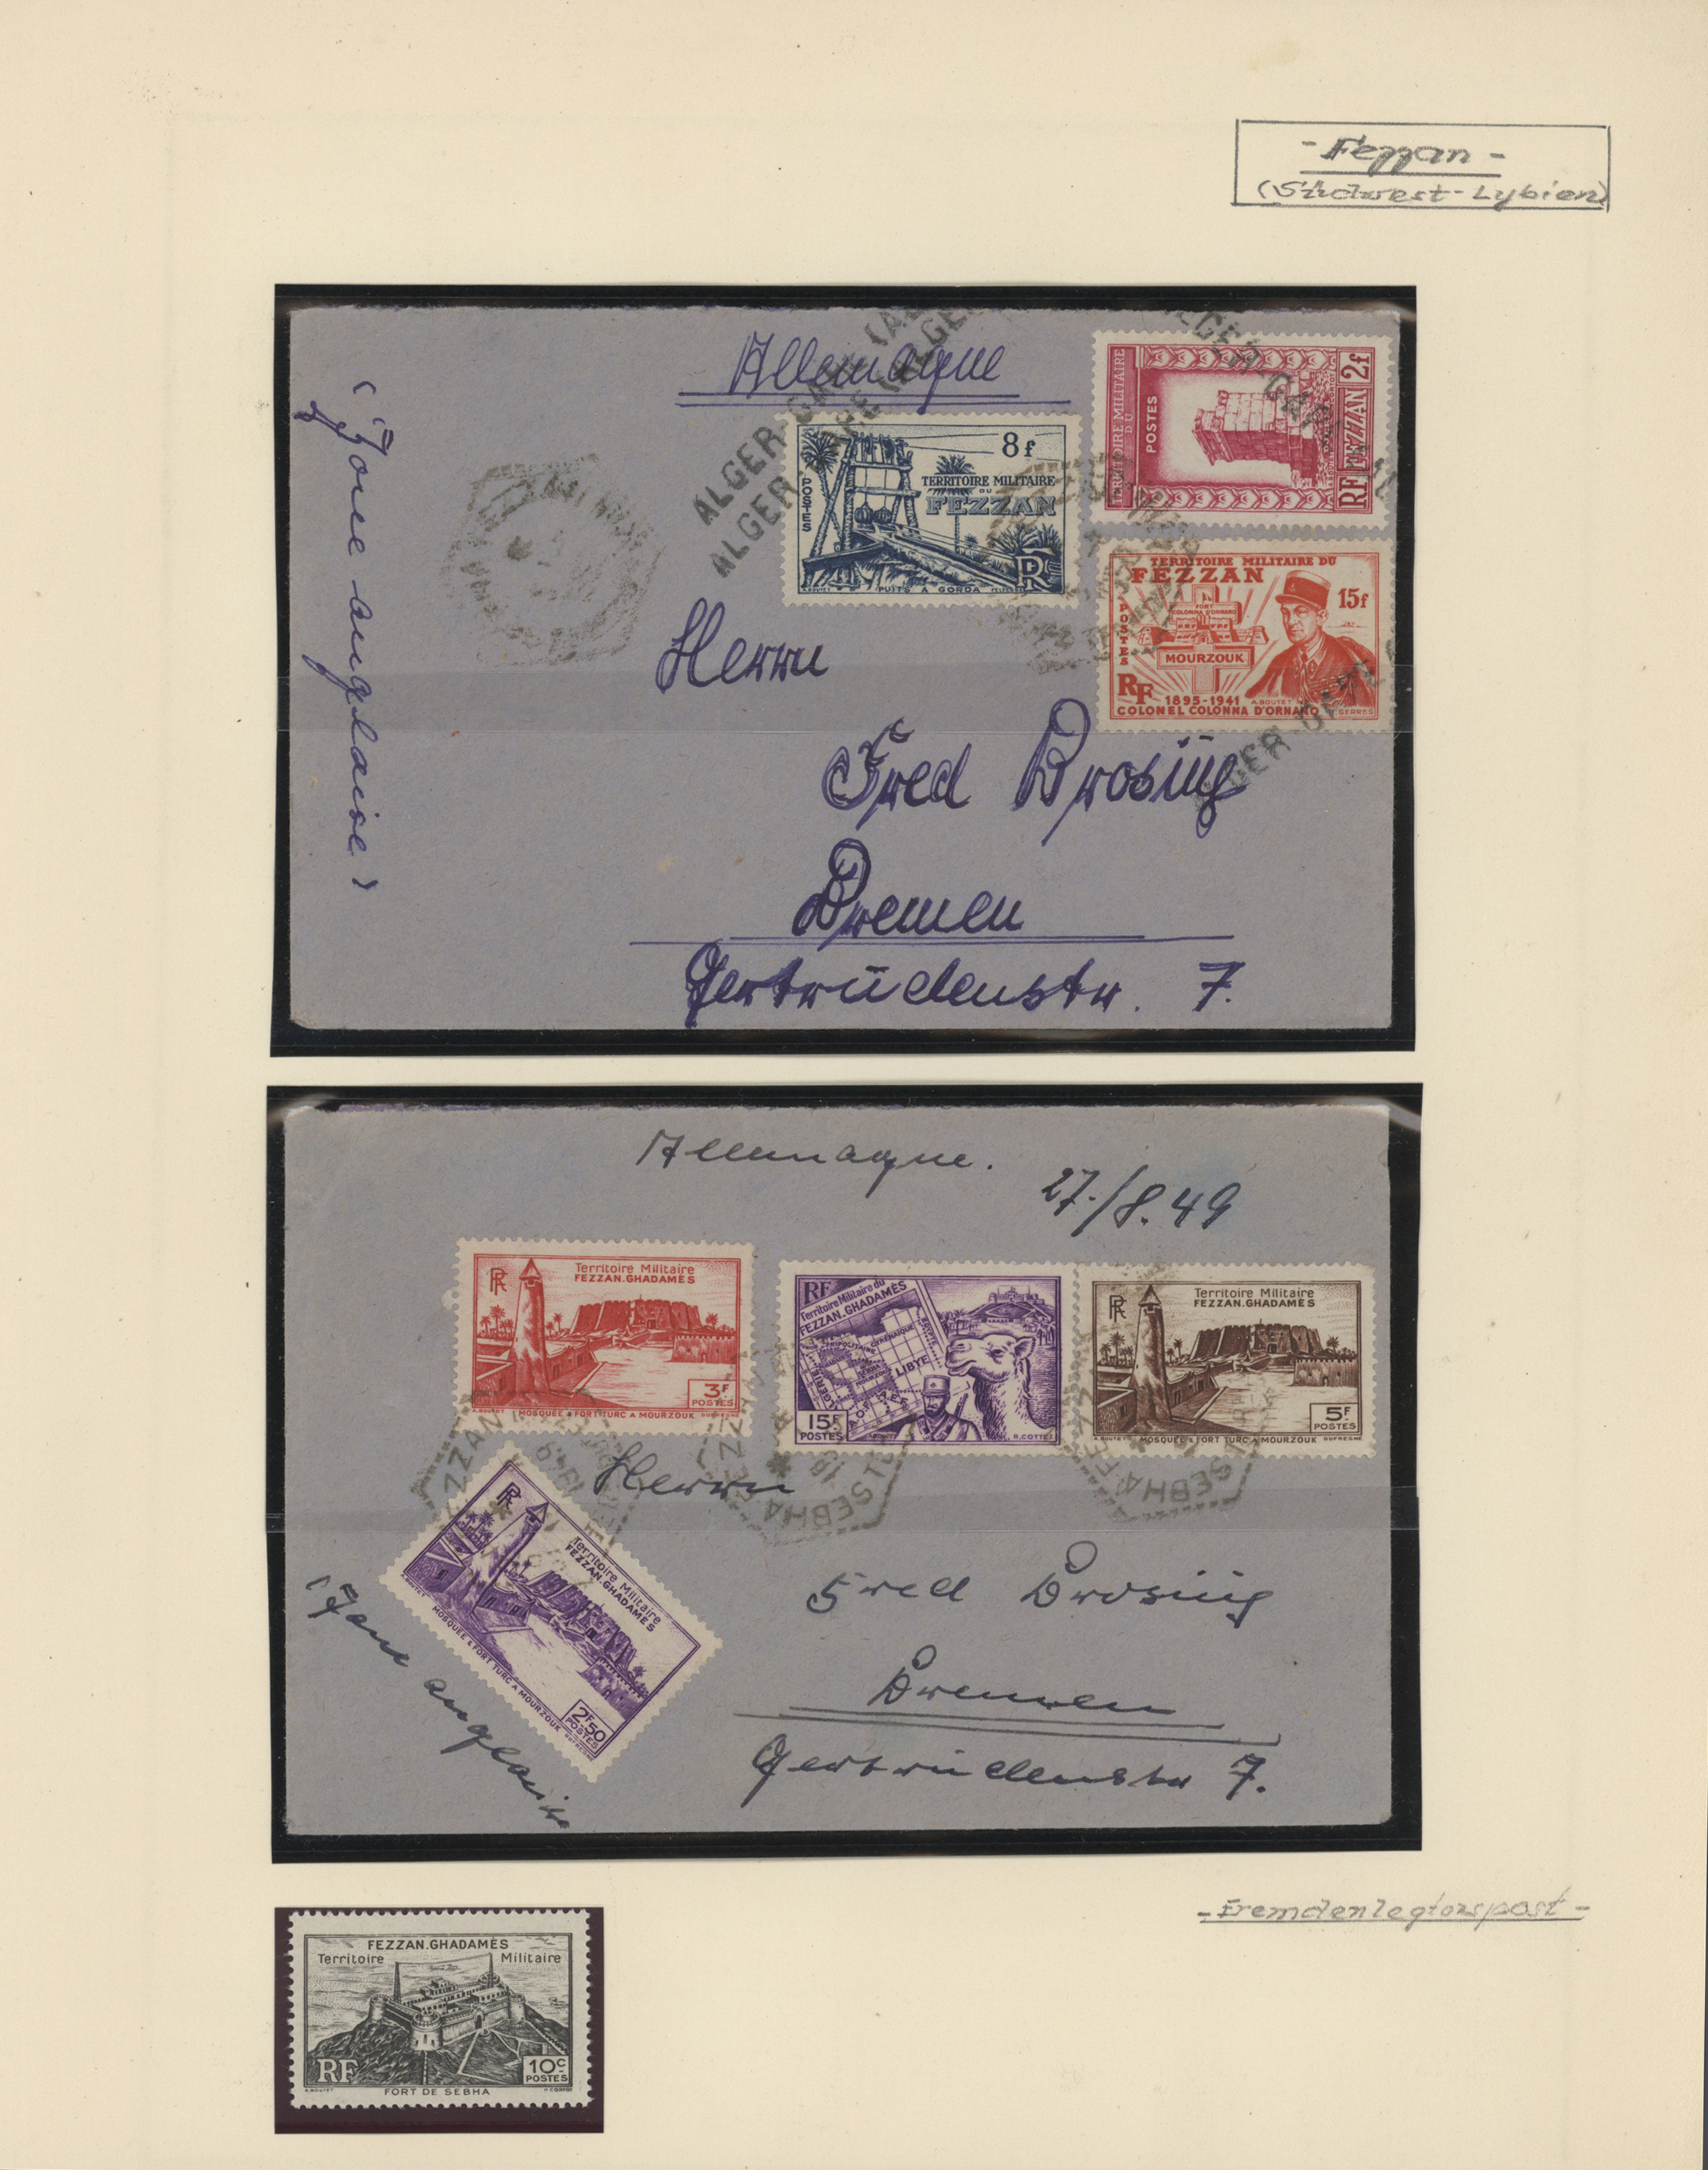 Lot 34673 - französische kolonien  -  Auktionshaus Christoph Gärtner GmbH & Co. KG Collections Germany,  Collections Supplement, Surprise boxes #39 Day 7